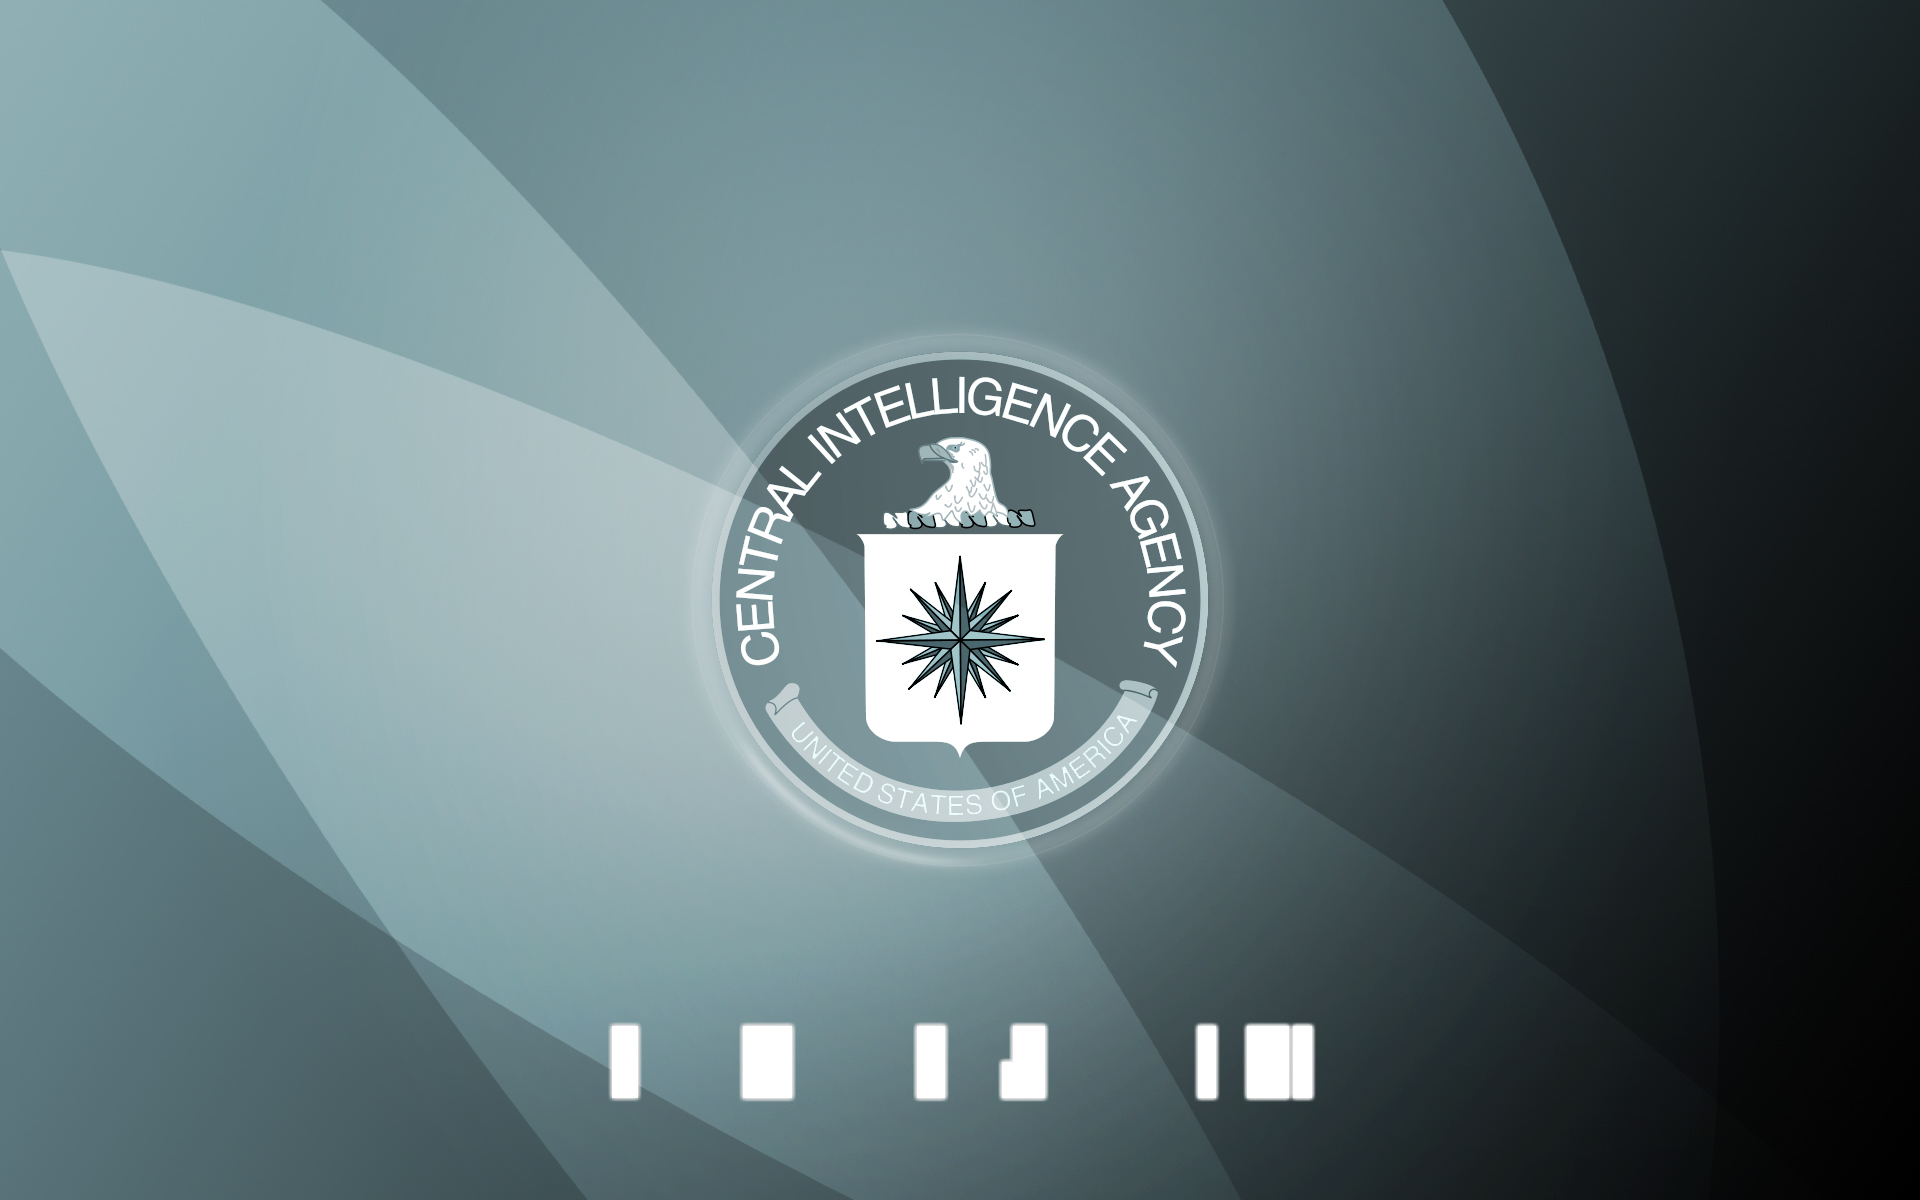 CIA Wallpaper HD - WallpaperSafari